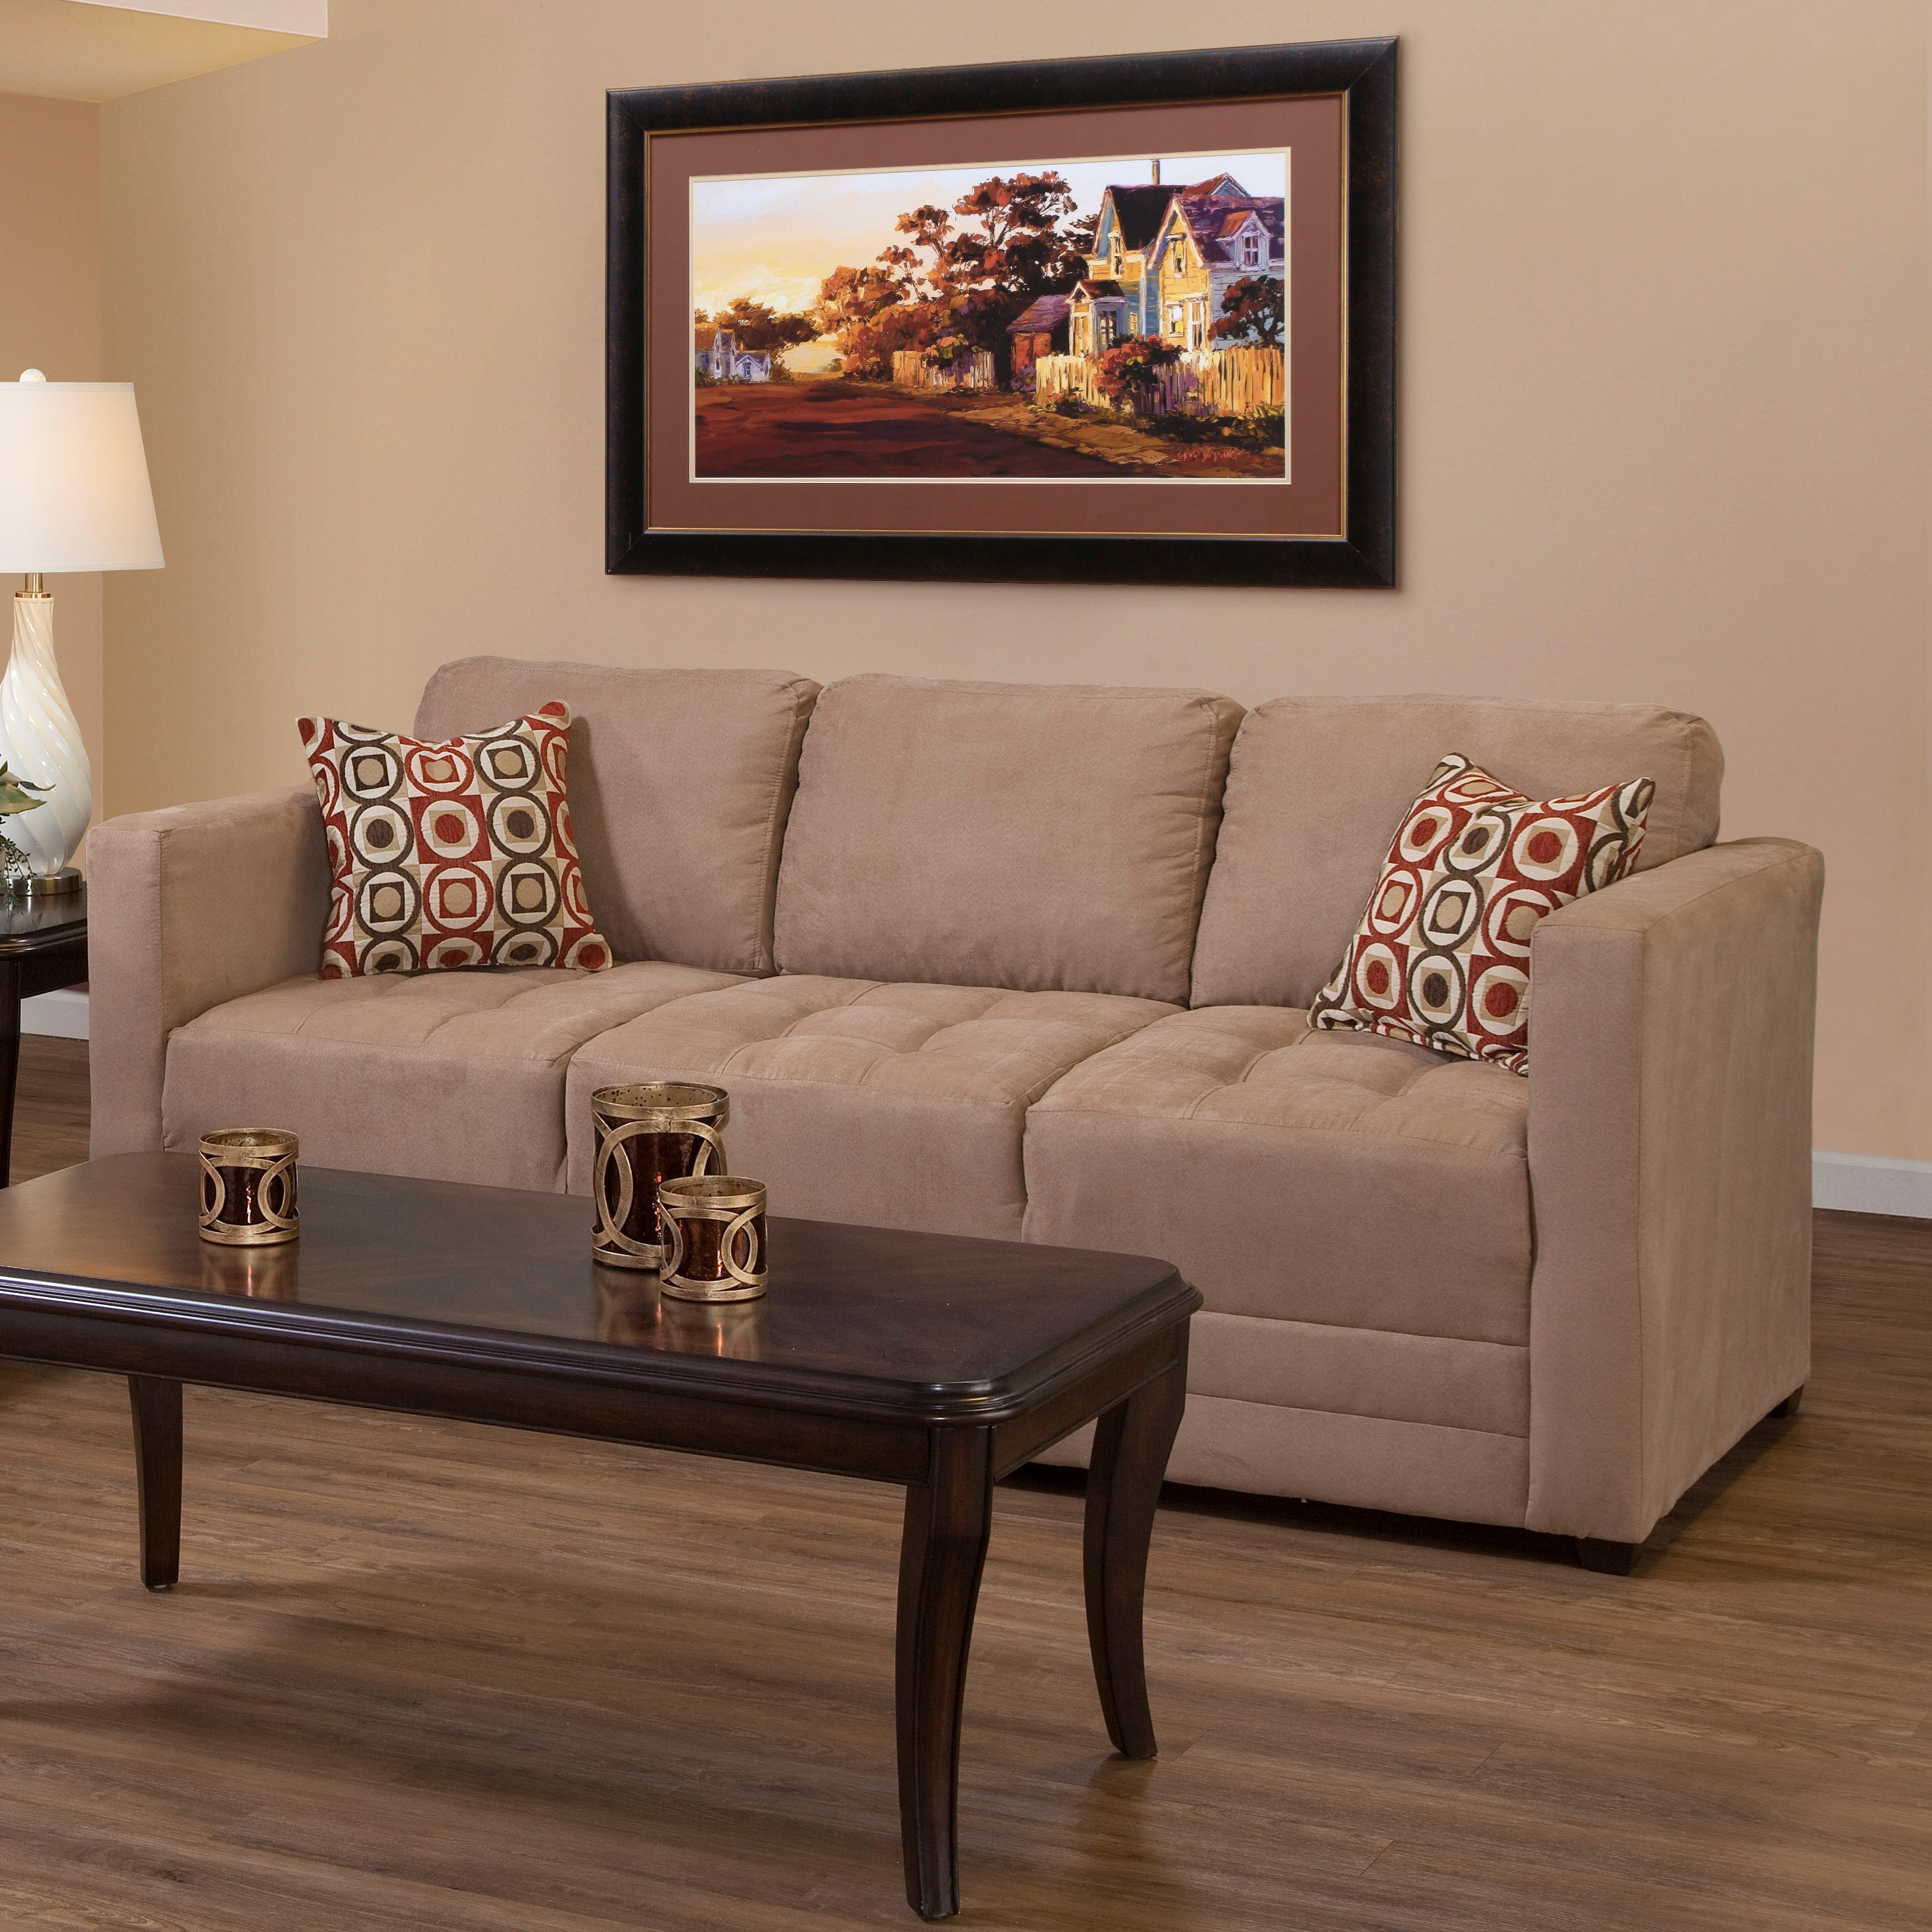 1085 Sofa by Serta Upholstery by Hughes Furniture at Rooms for Less